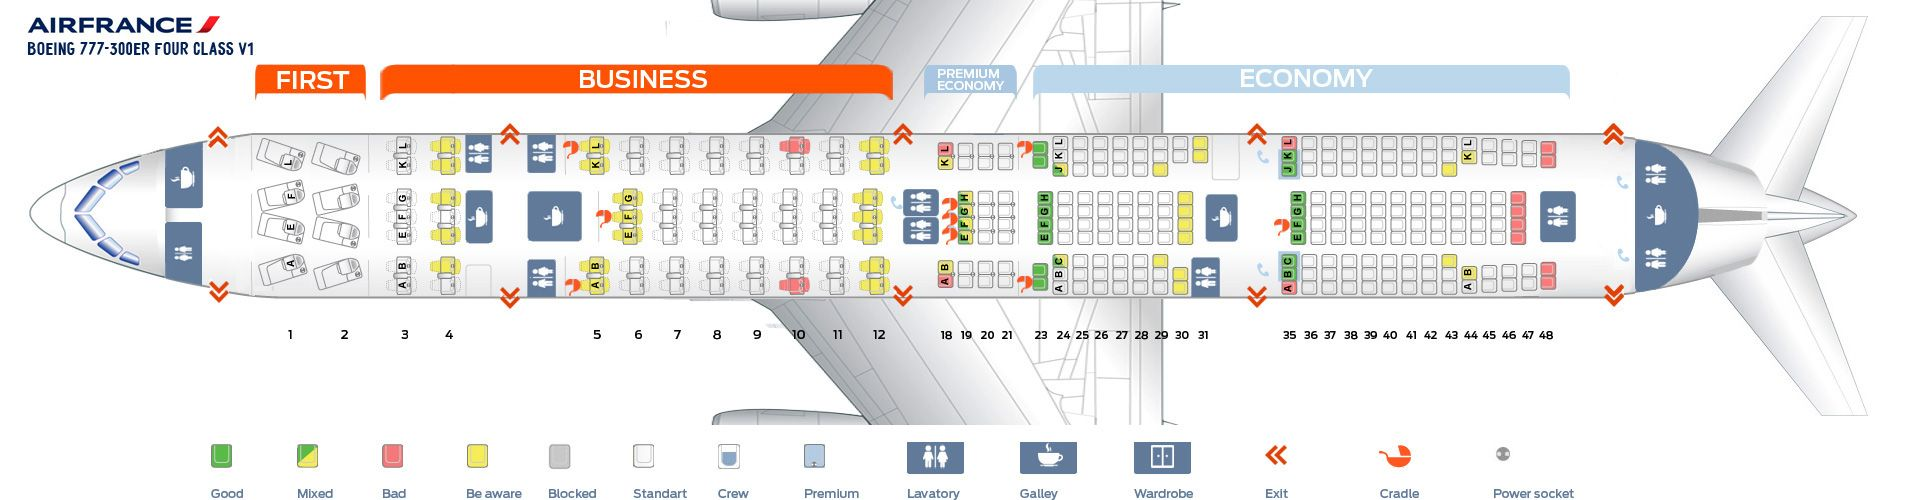 Air France Fleet Boeing 777300ER Details and Pictures